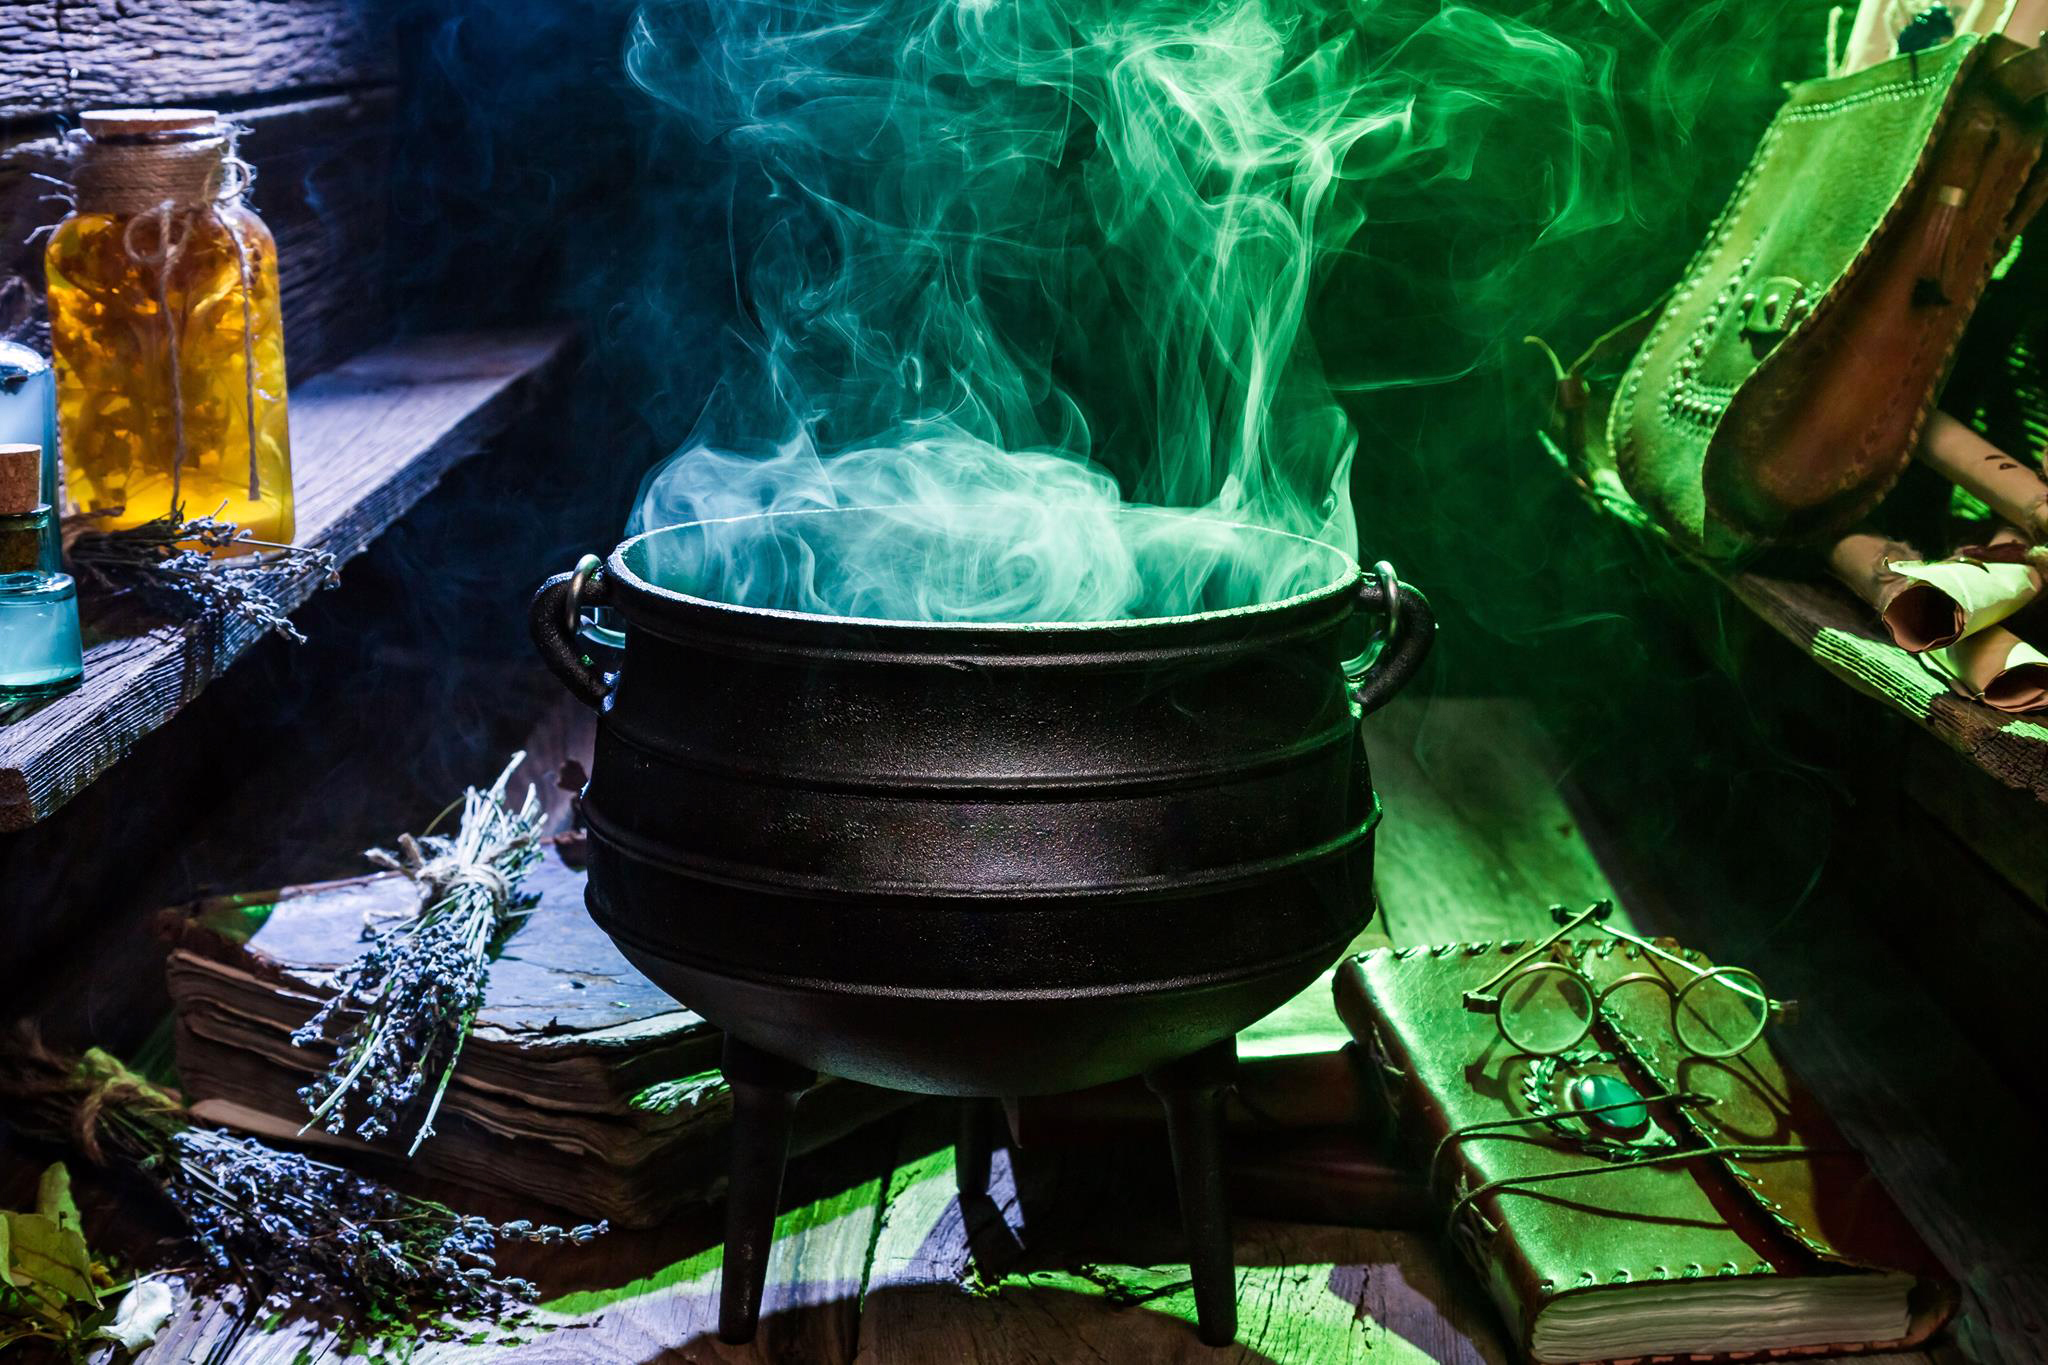 Wizard's Cauldron pop-up coming to Houston